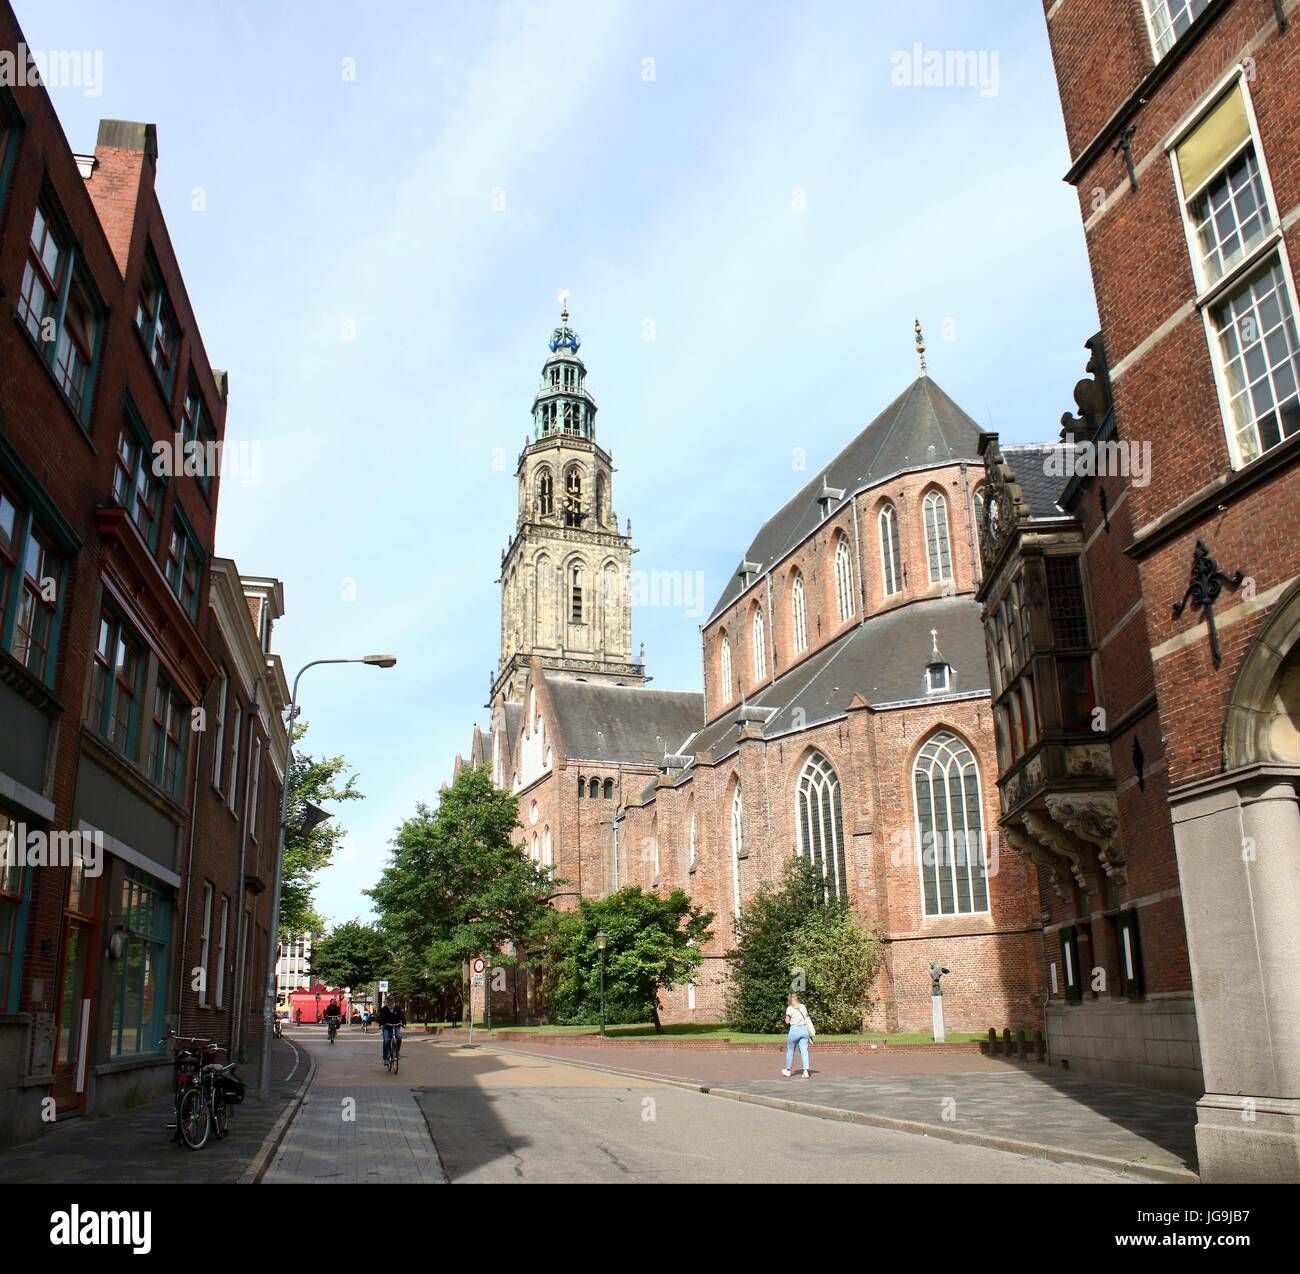 Late Medieval Martini church & tower in the city center of Groningen, The Netherlands, (stitched image). Stock Photo